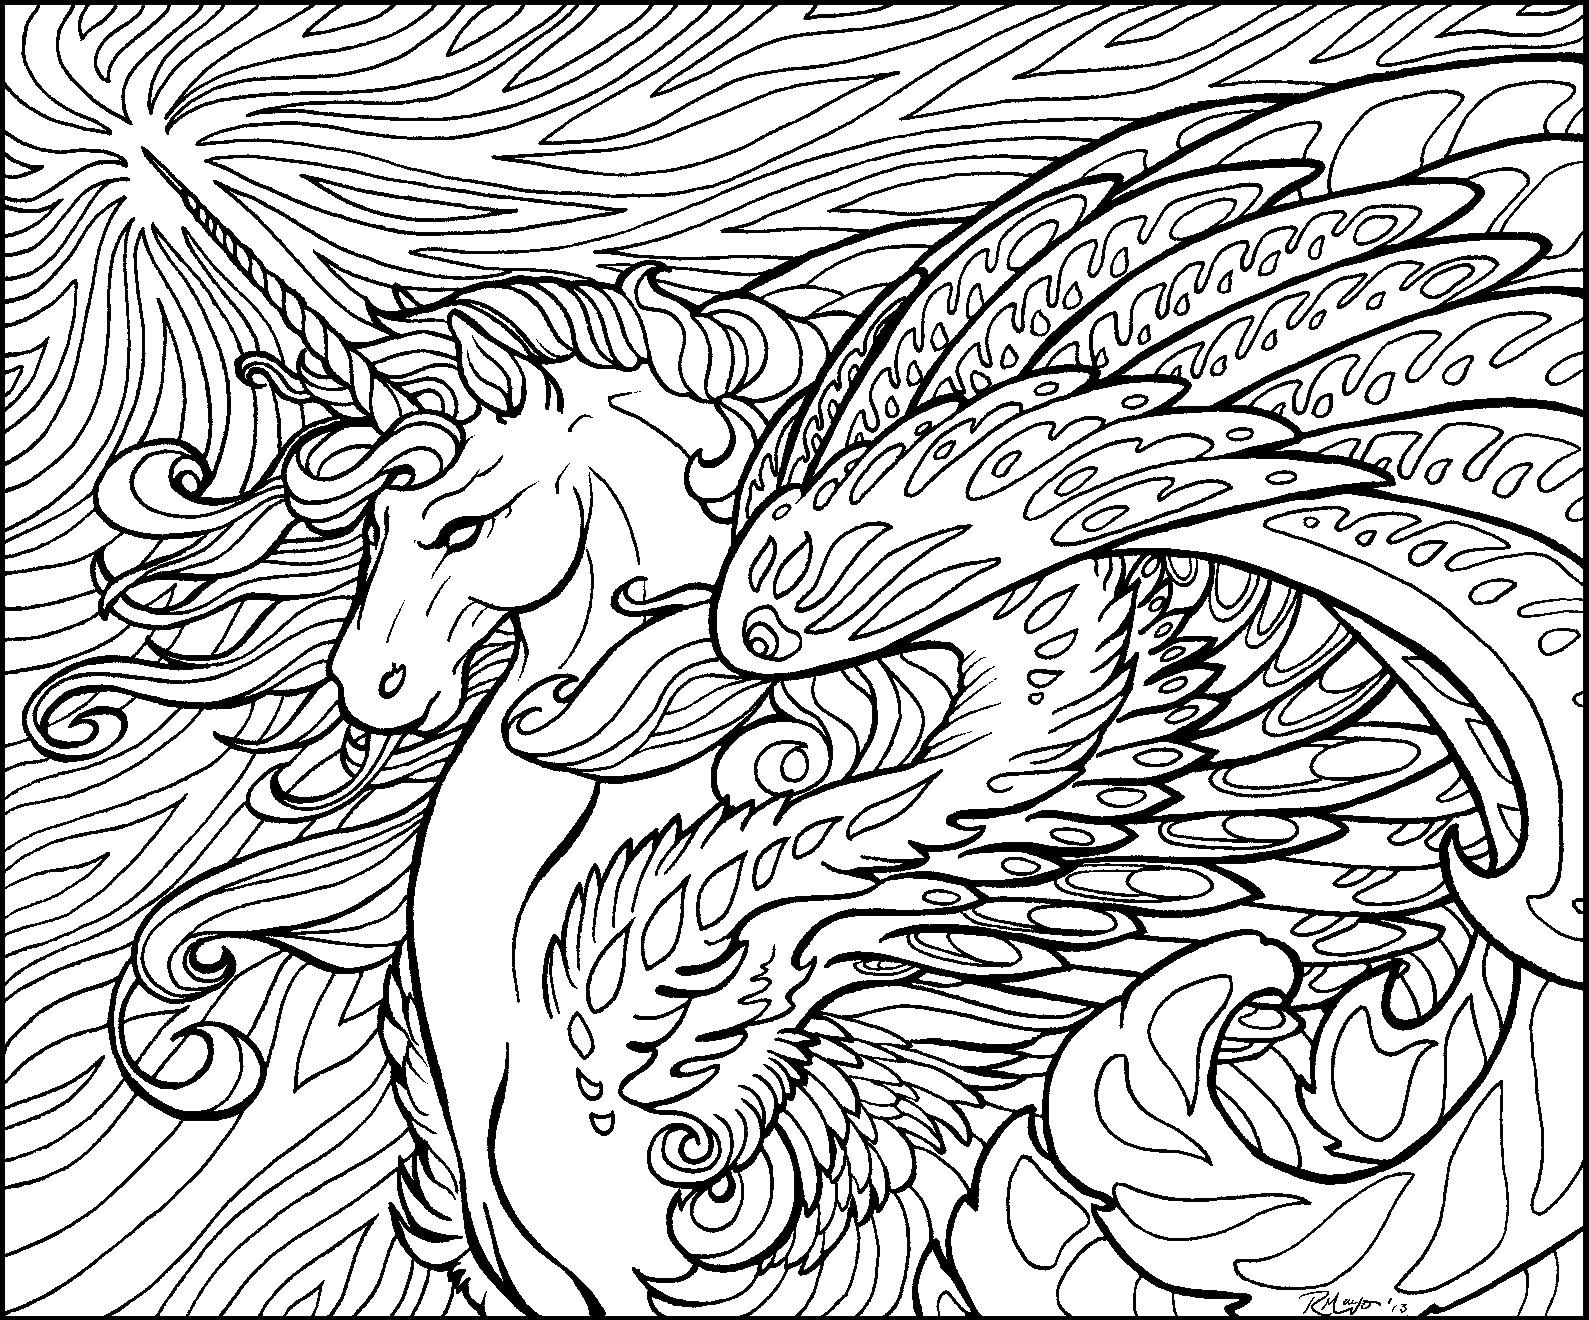 Hard Coloring Pages For Adults Max Coloring Dragon Coloring Page Horse Coloring Pages Detailed Coloring Pages